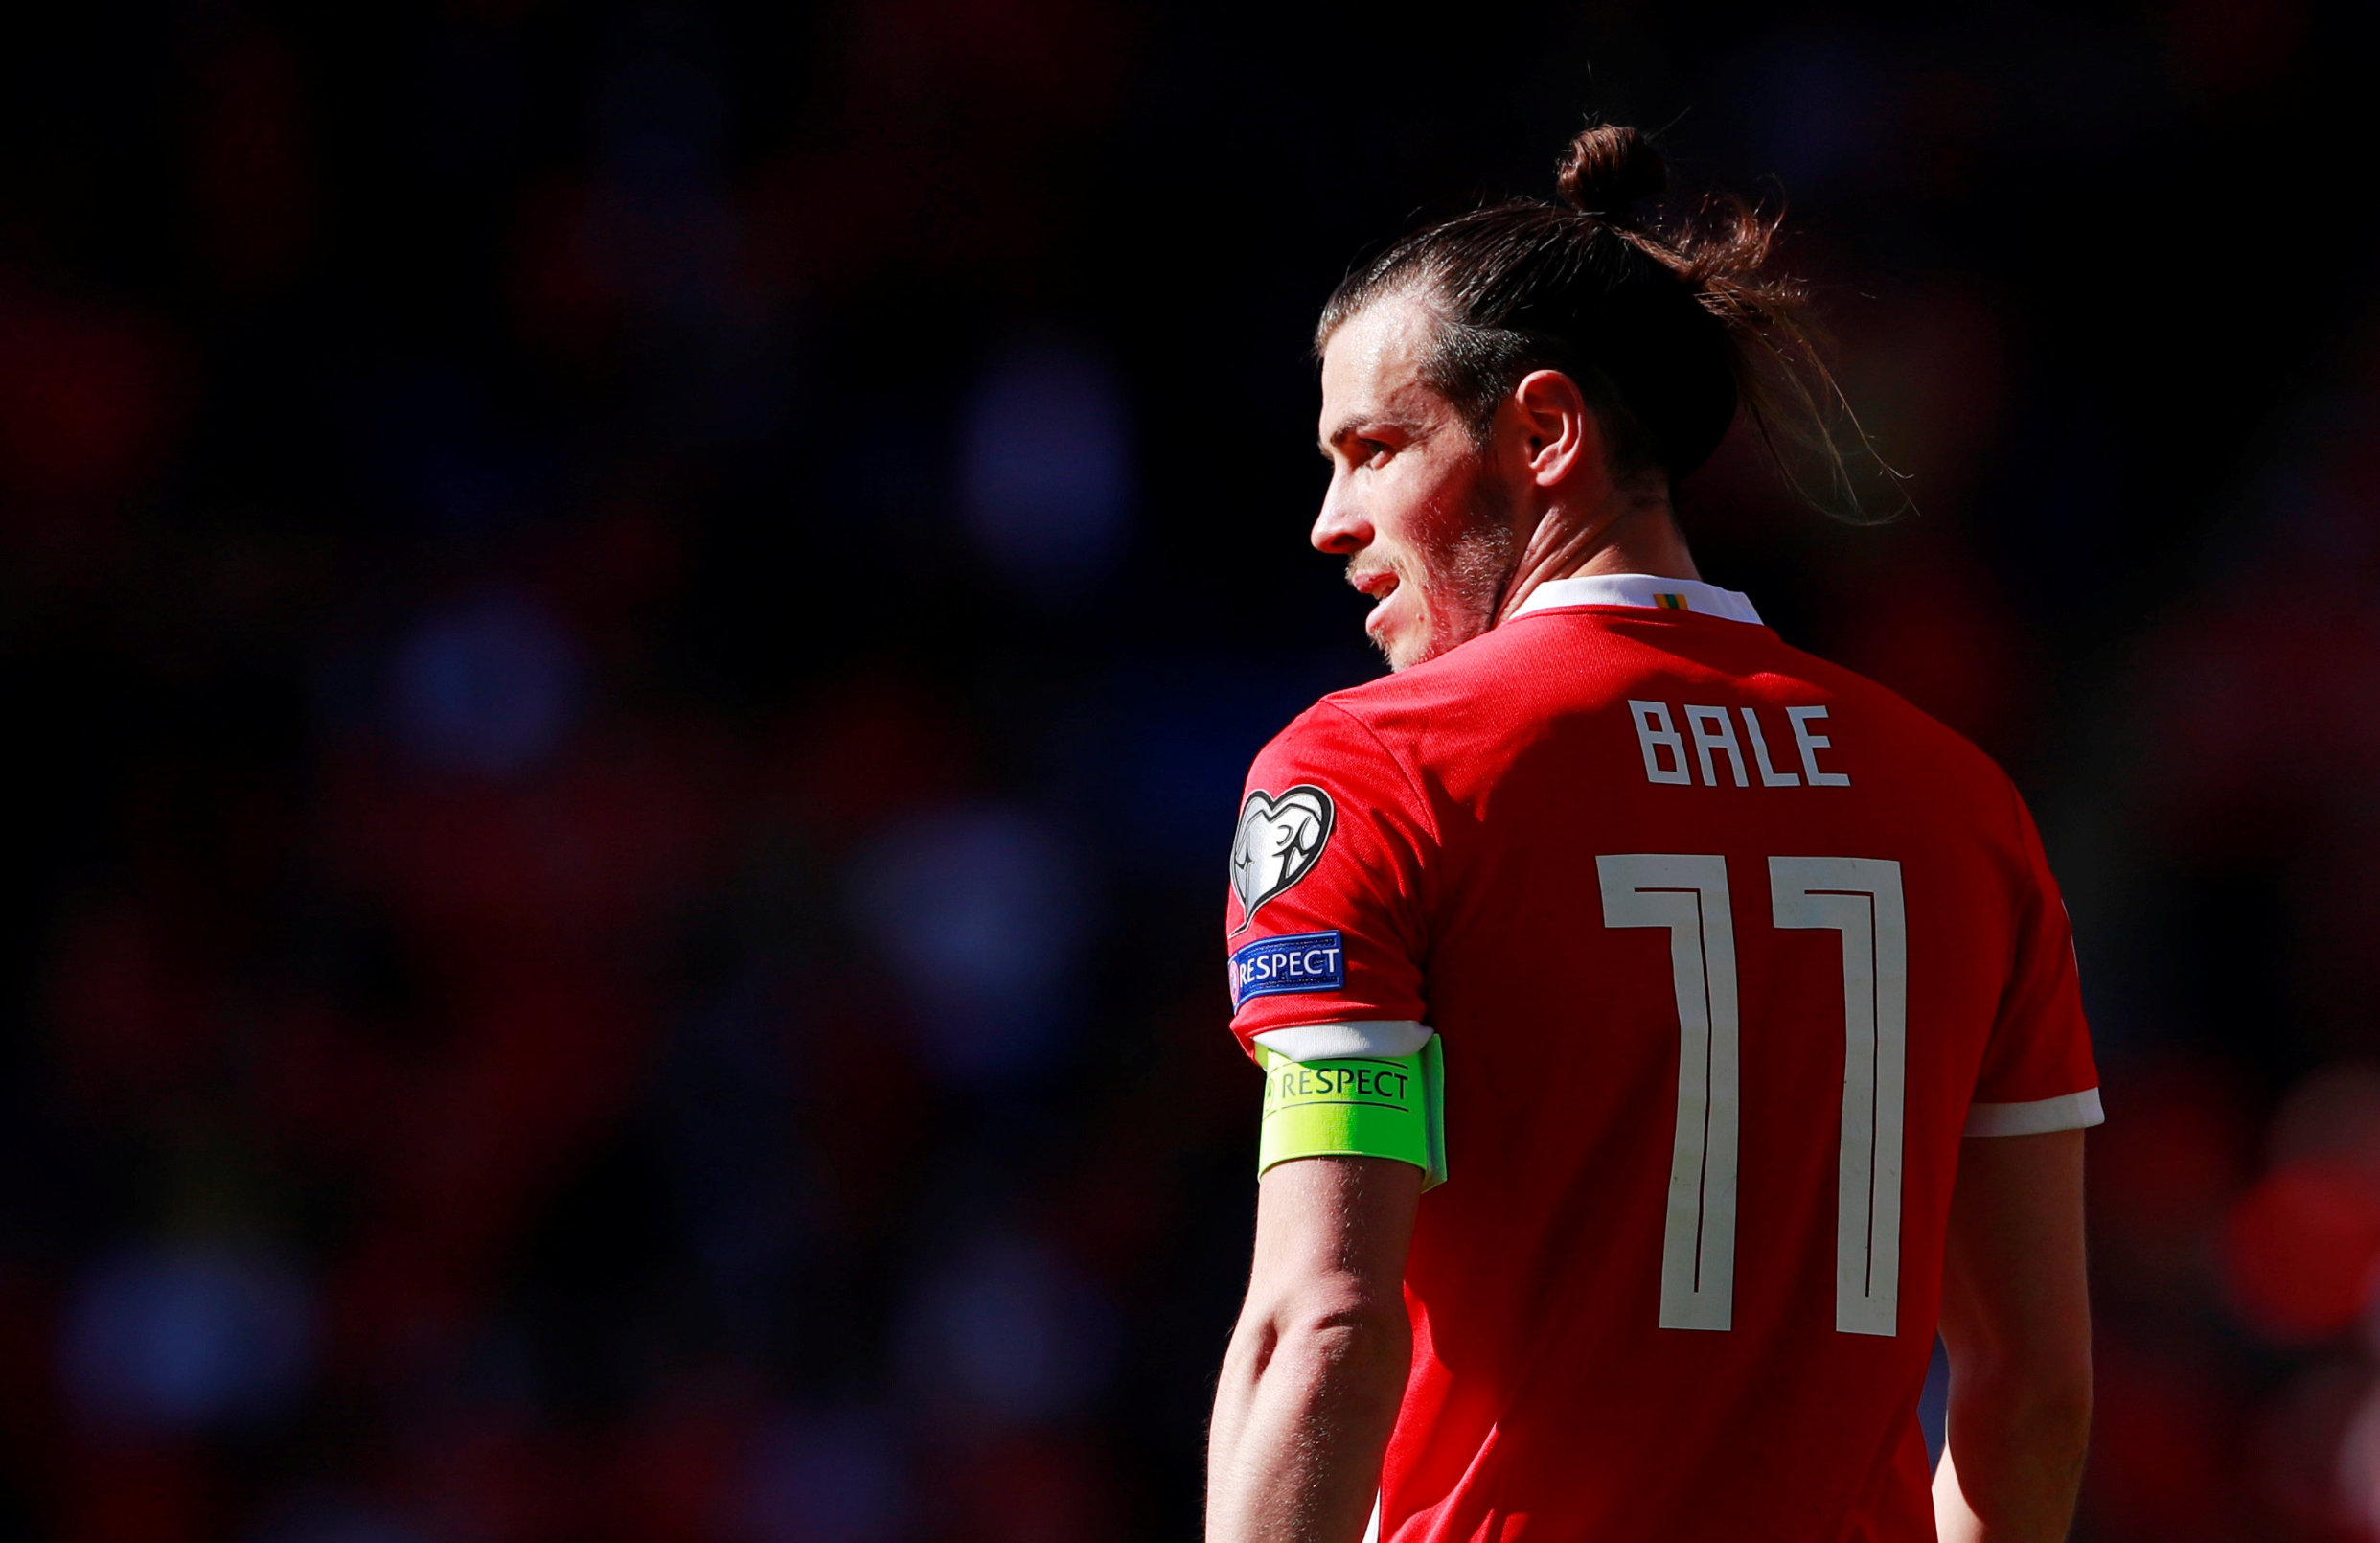 Soccer Football - Euro 2020 Qualifier - Group E - Wales v Slovakia - Cardiff City Stadium, Cardiff, Britain - March 24, 2019  Wales' Gareth Bale during the match      Action Images via Reuters/Andrew Couldridge